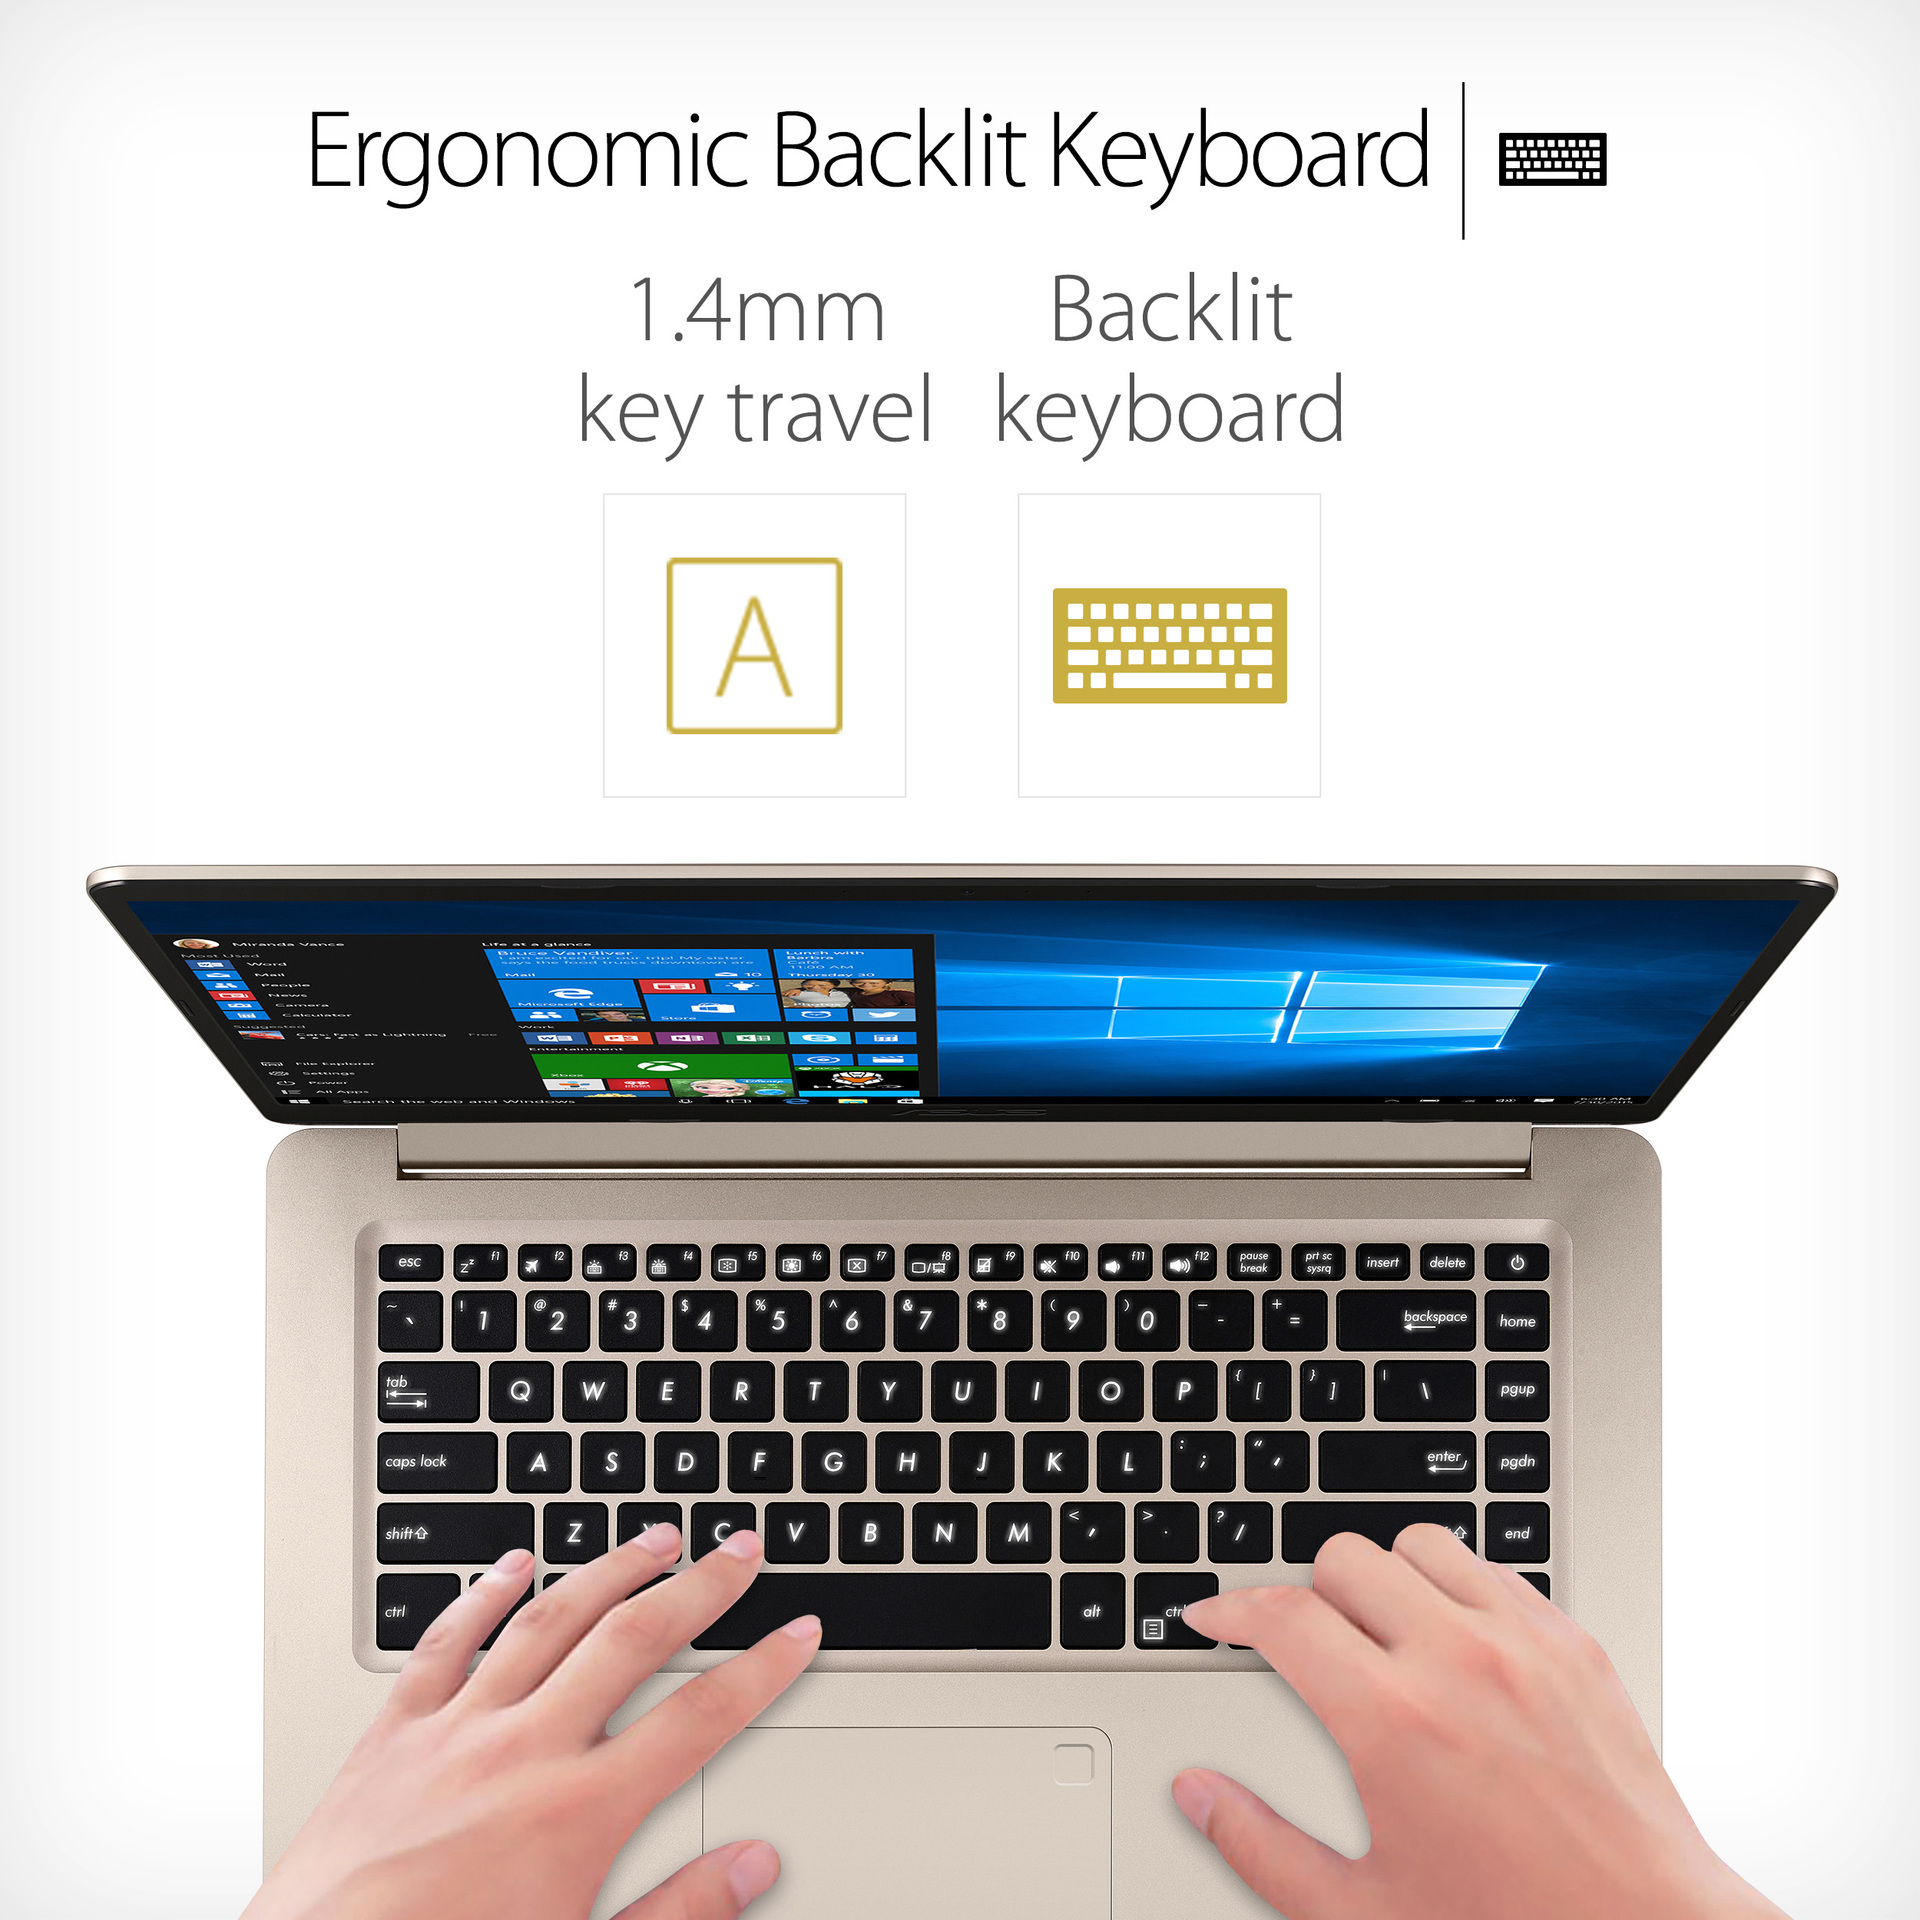 Ergonomic Backlit Keyboard